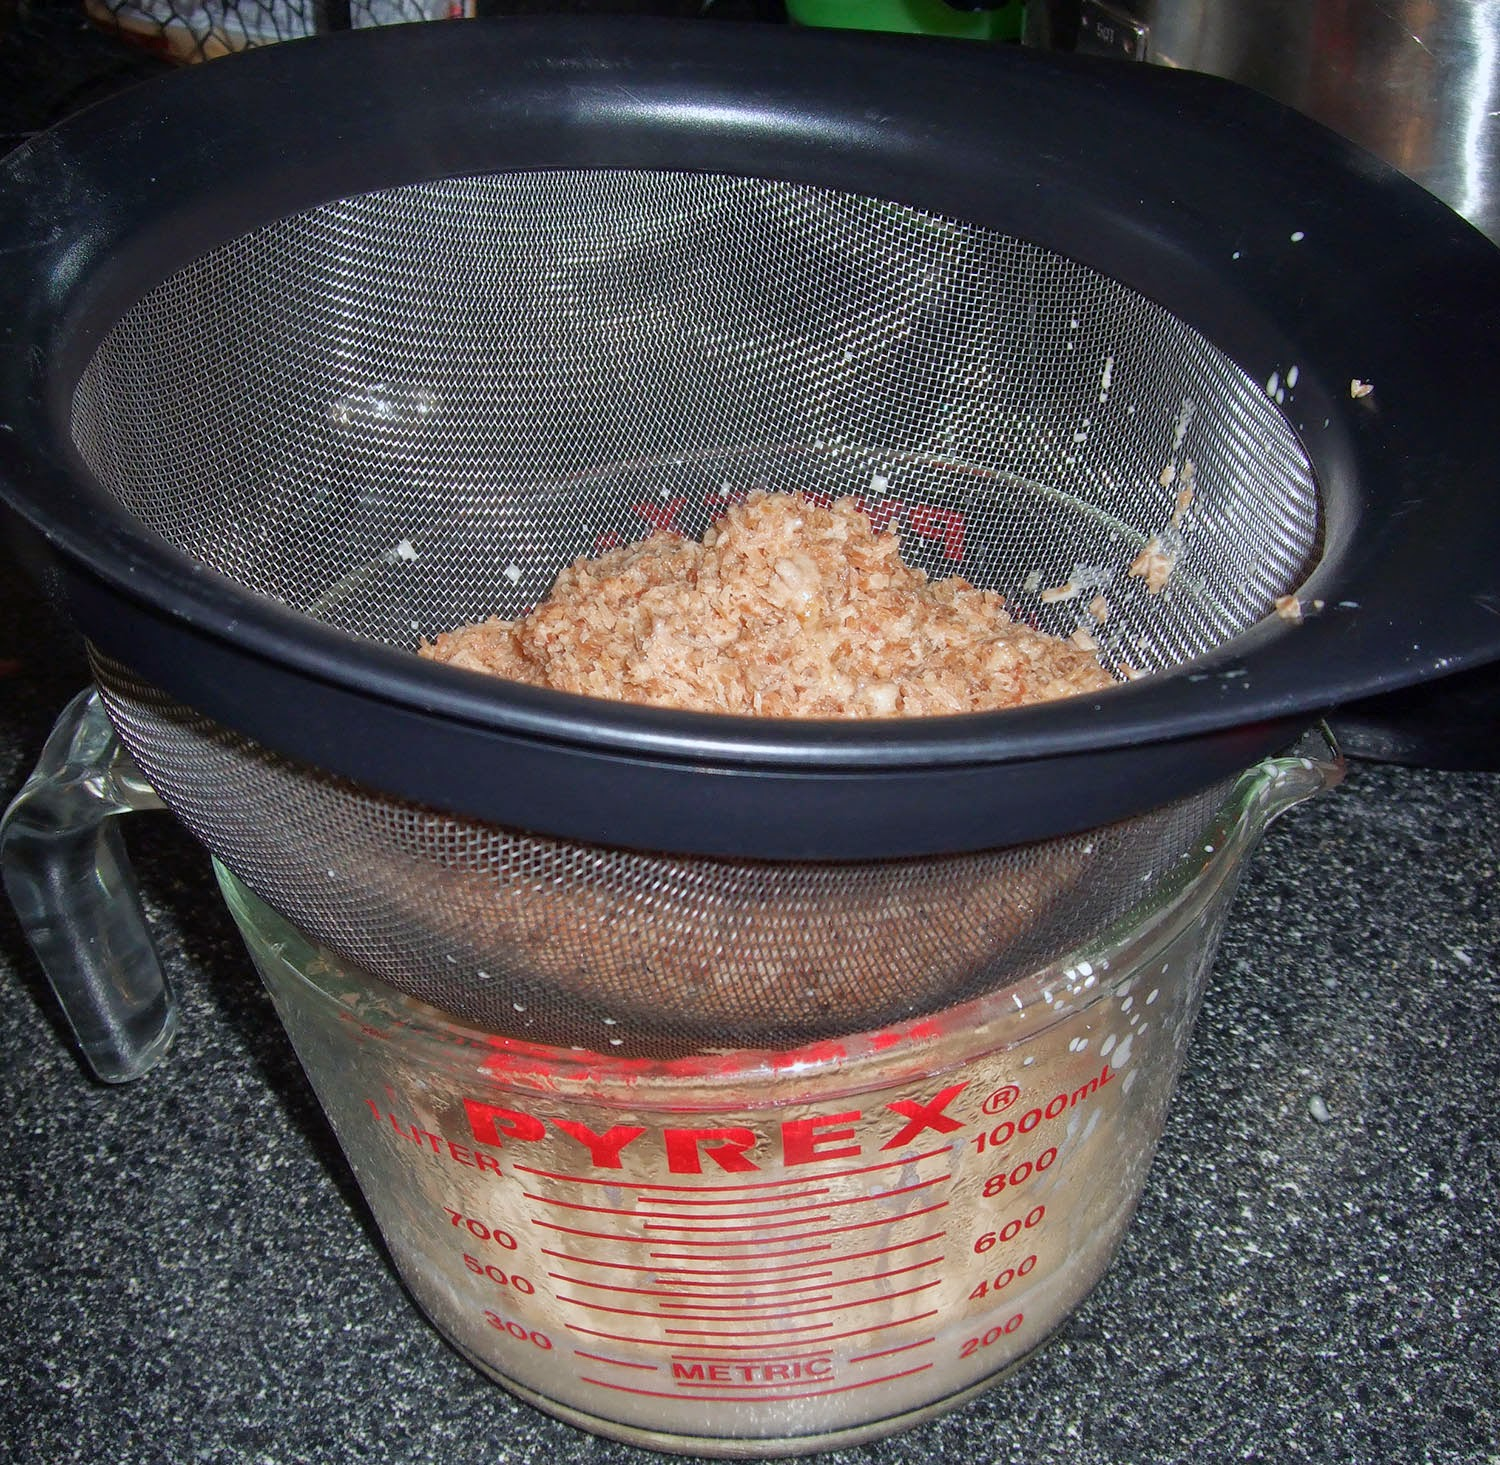 Straining out toasted coconut.